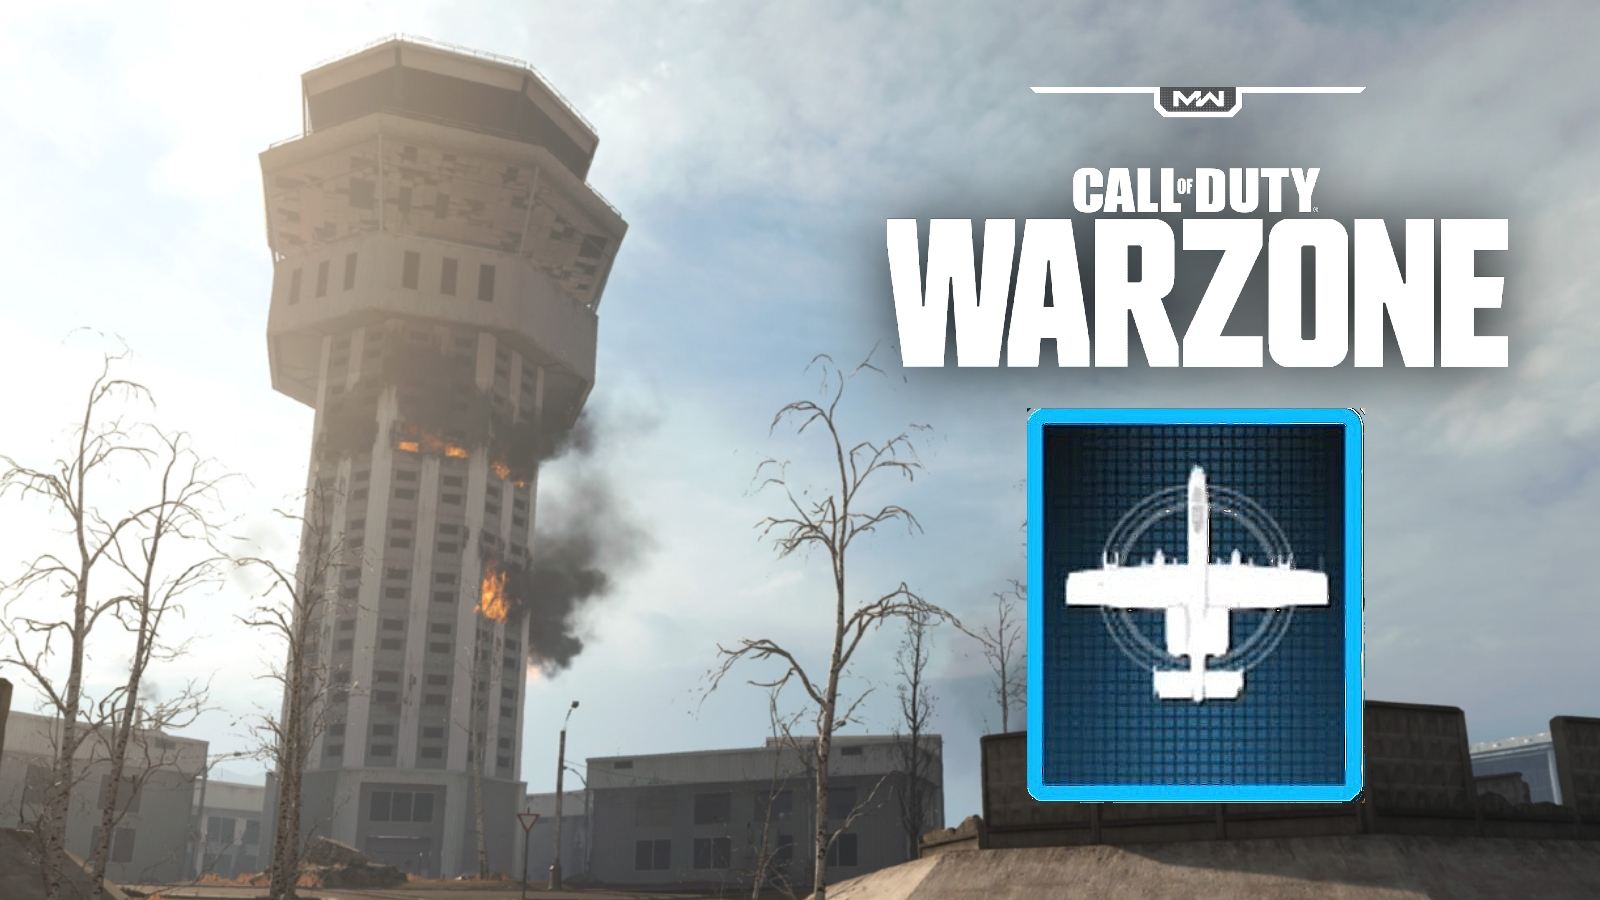 warzone airport tower precision airstrike